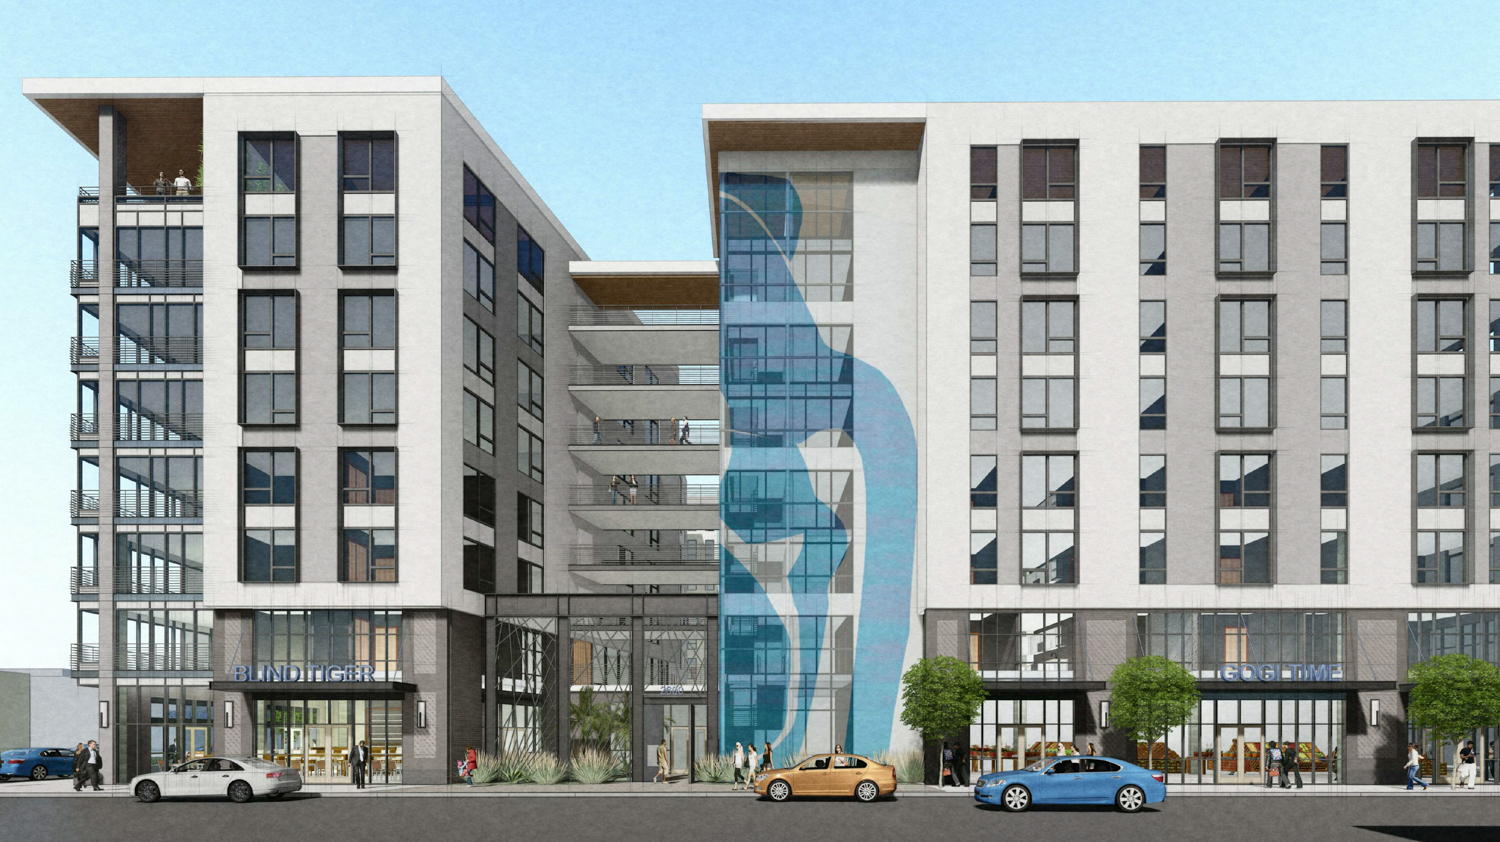 2600 Telegraph Avenue vertical facade elevation, rendering by BAR Architects